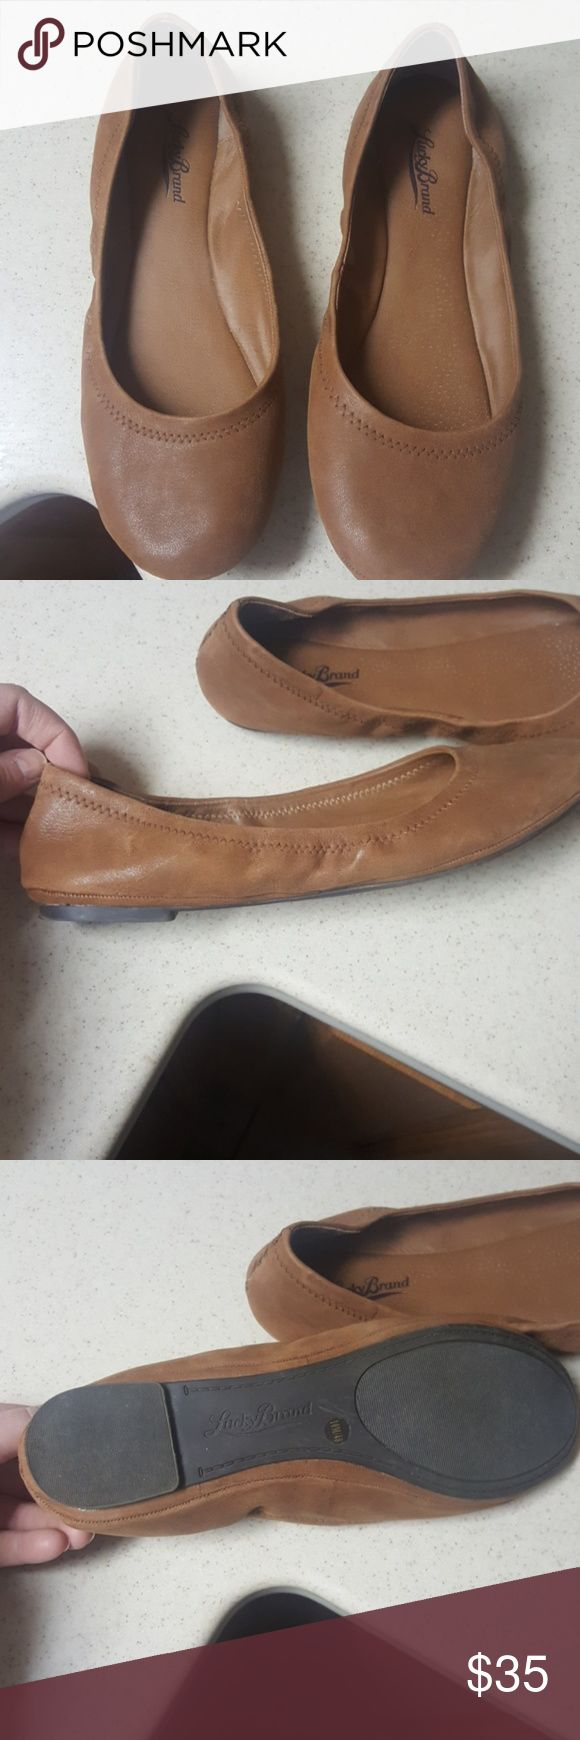 Lucky Brand Flats, worn a few times Comfy popular flats, great color Lucky Brand Shoes Flats & Loafers